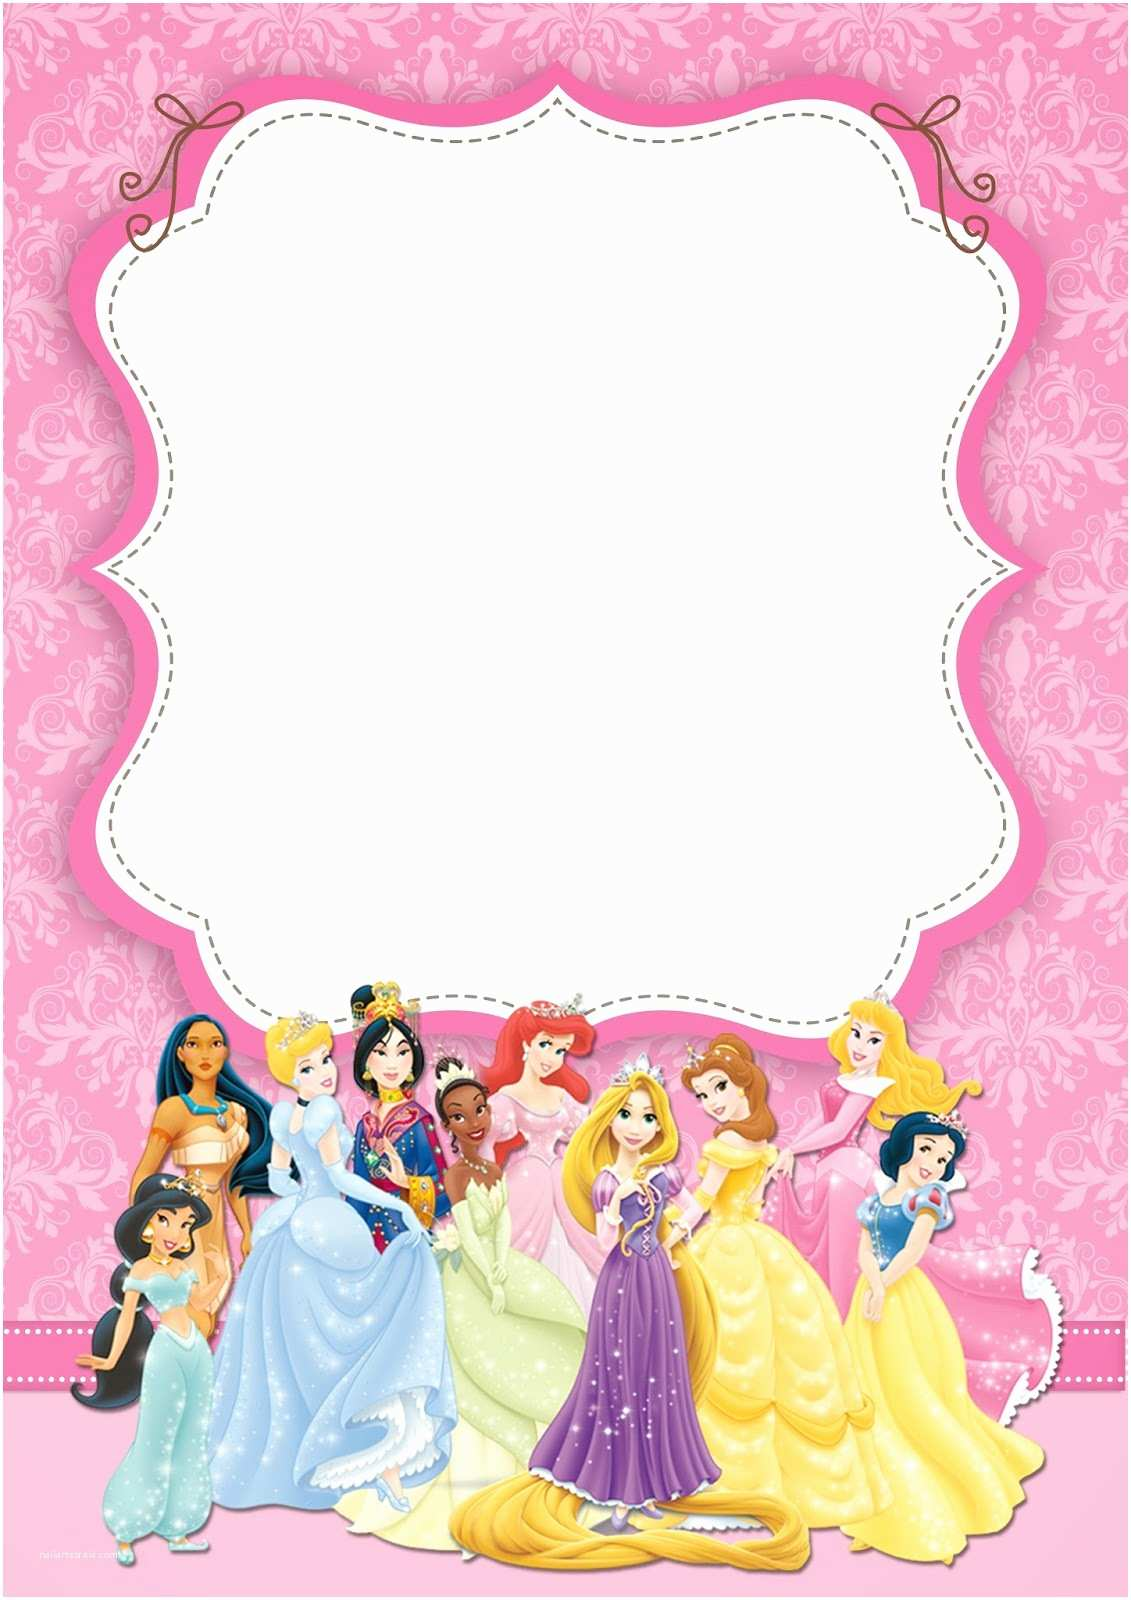 Disney Princess Birthday Invitations Disney Princess Party Free Printable Party Invitations